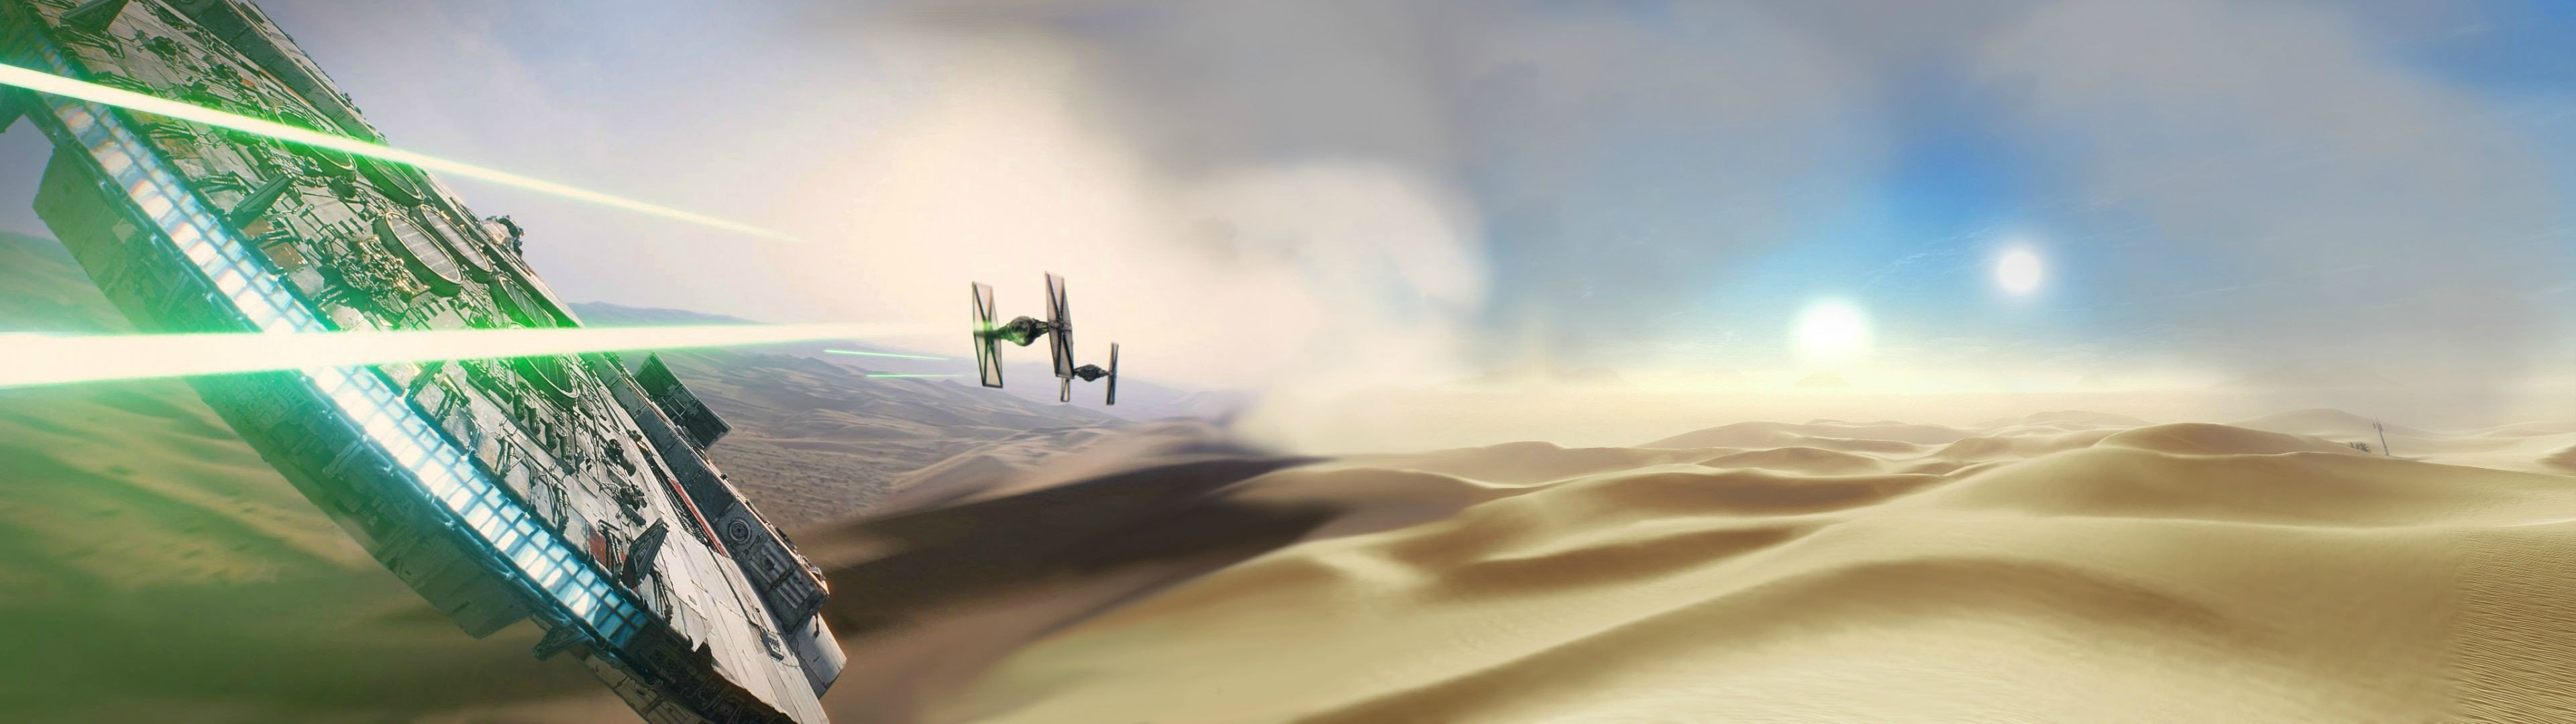 Multiple Display Dual Monitors Star Wars Ultrawide Hd Wallpapers Desktop And Mobile Images Photos